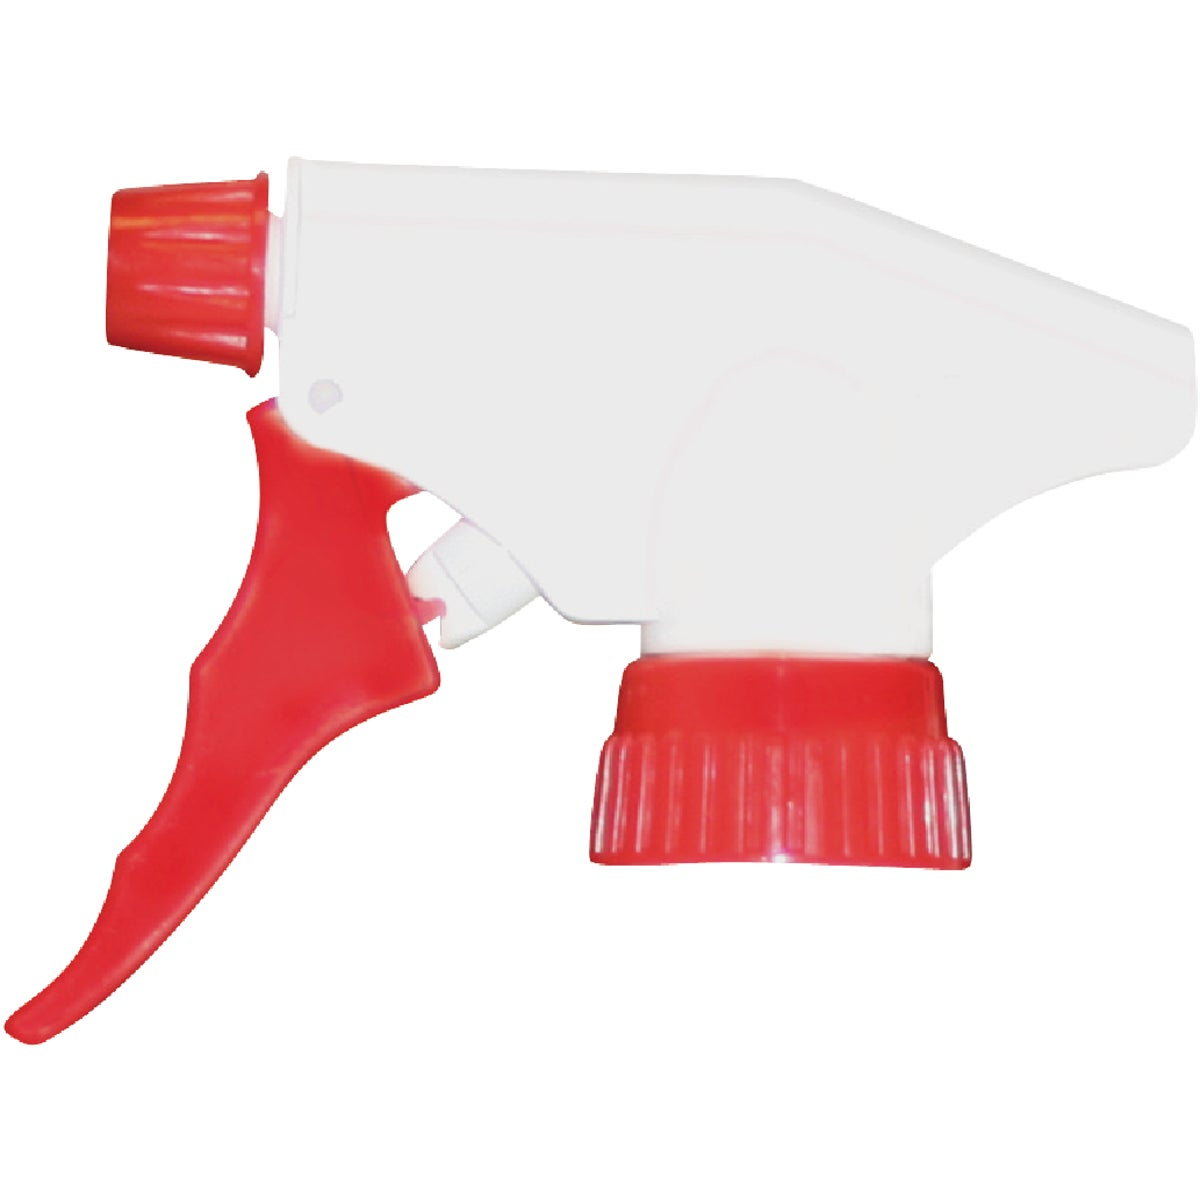 REPLACEMENT SPRAYER HEAD